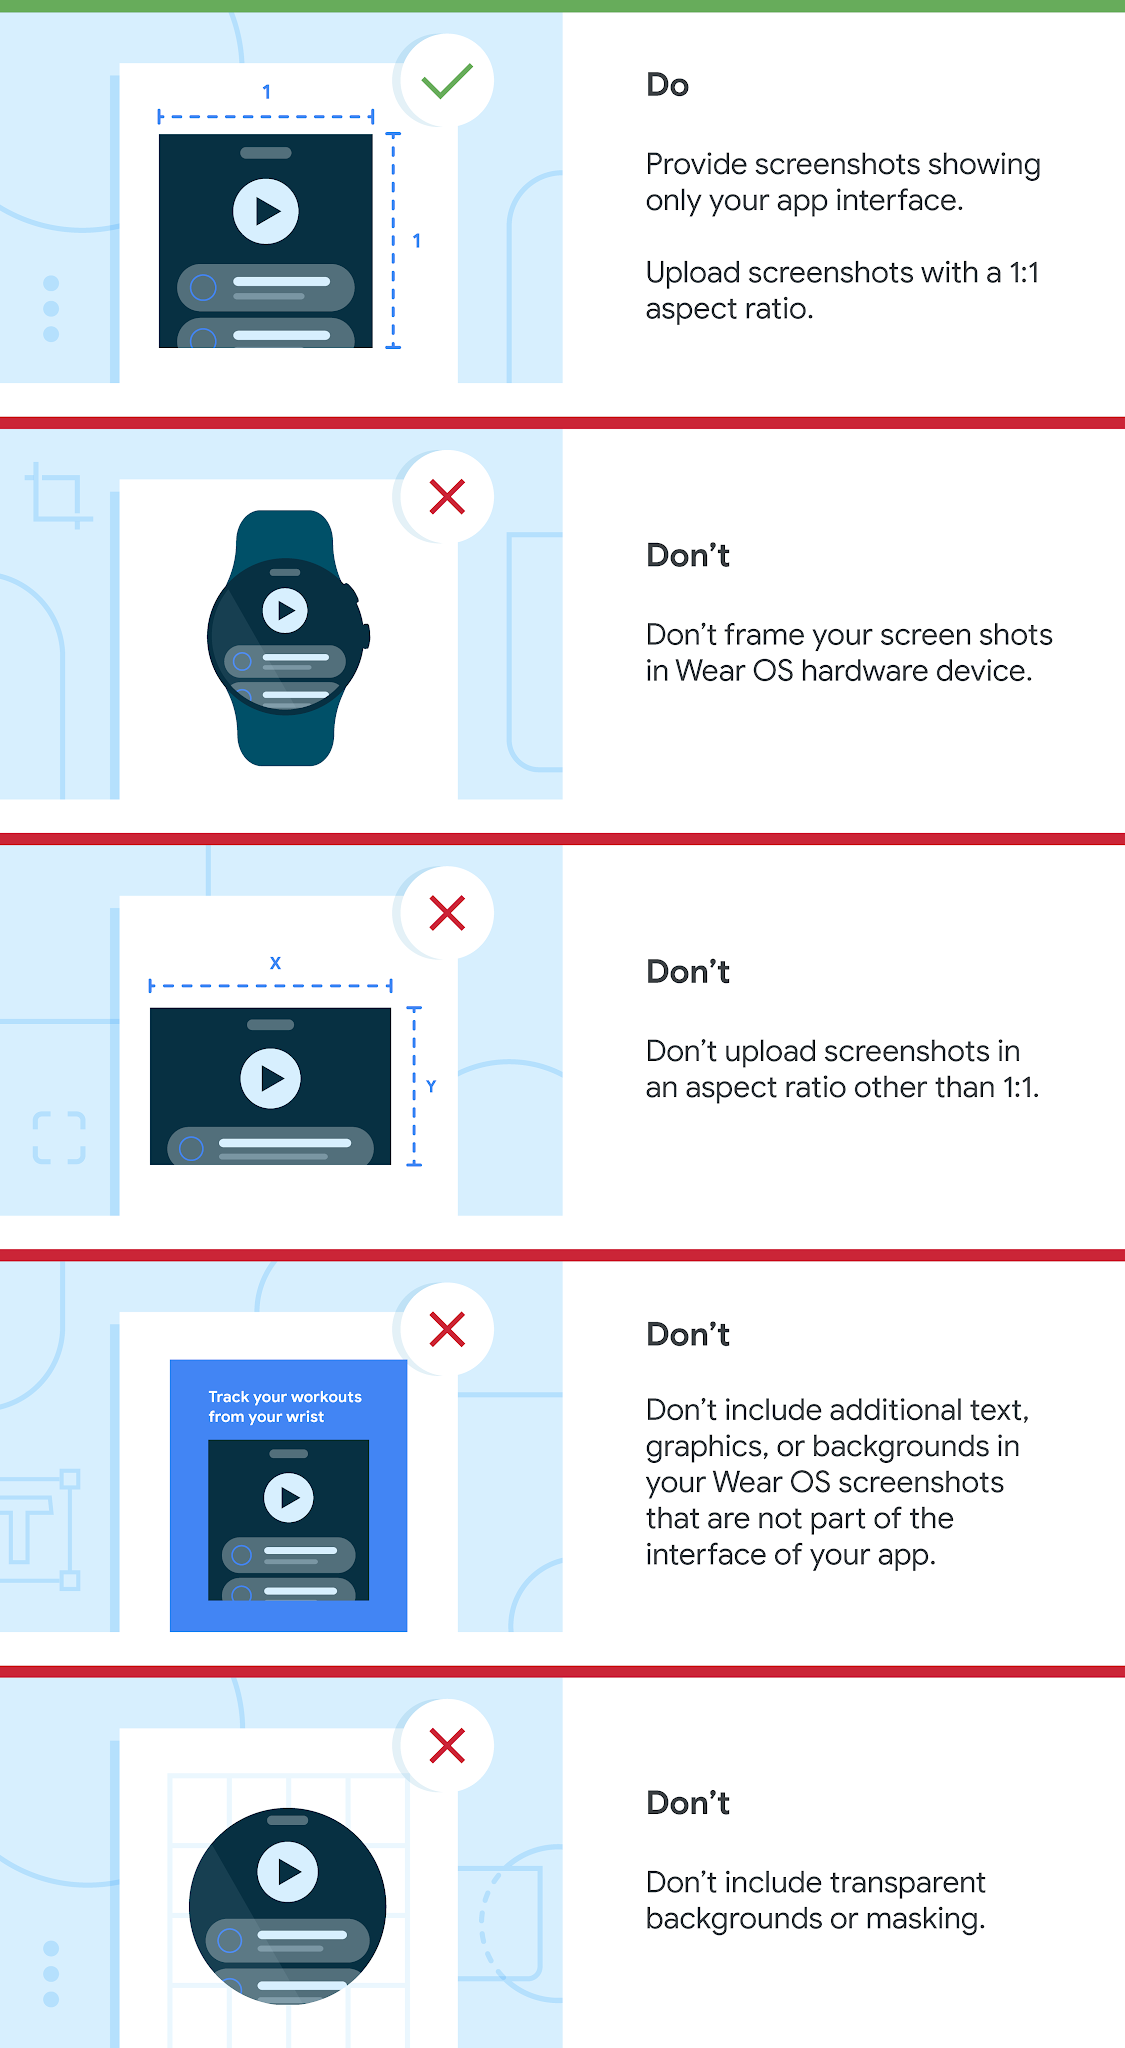 List of Watch OS dos and don'ts. Do upload screenshots with a minimum size of 384 x 384 pixels, and with a 1:1 aspect ratio. Do provide screenshots showing only your app interface — screenshots must demonstrate the actual in-app or in-game experience, focusing on the core features and content so users can anticipate what the app or game experience will be like. Don't frame your screenshots in a Wear OS watch. Don't include additional text, graphics, or backgrounds in your Wear OS screenshots that are not part of the interface of your app. Don't include transparent backgrounds or masking.